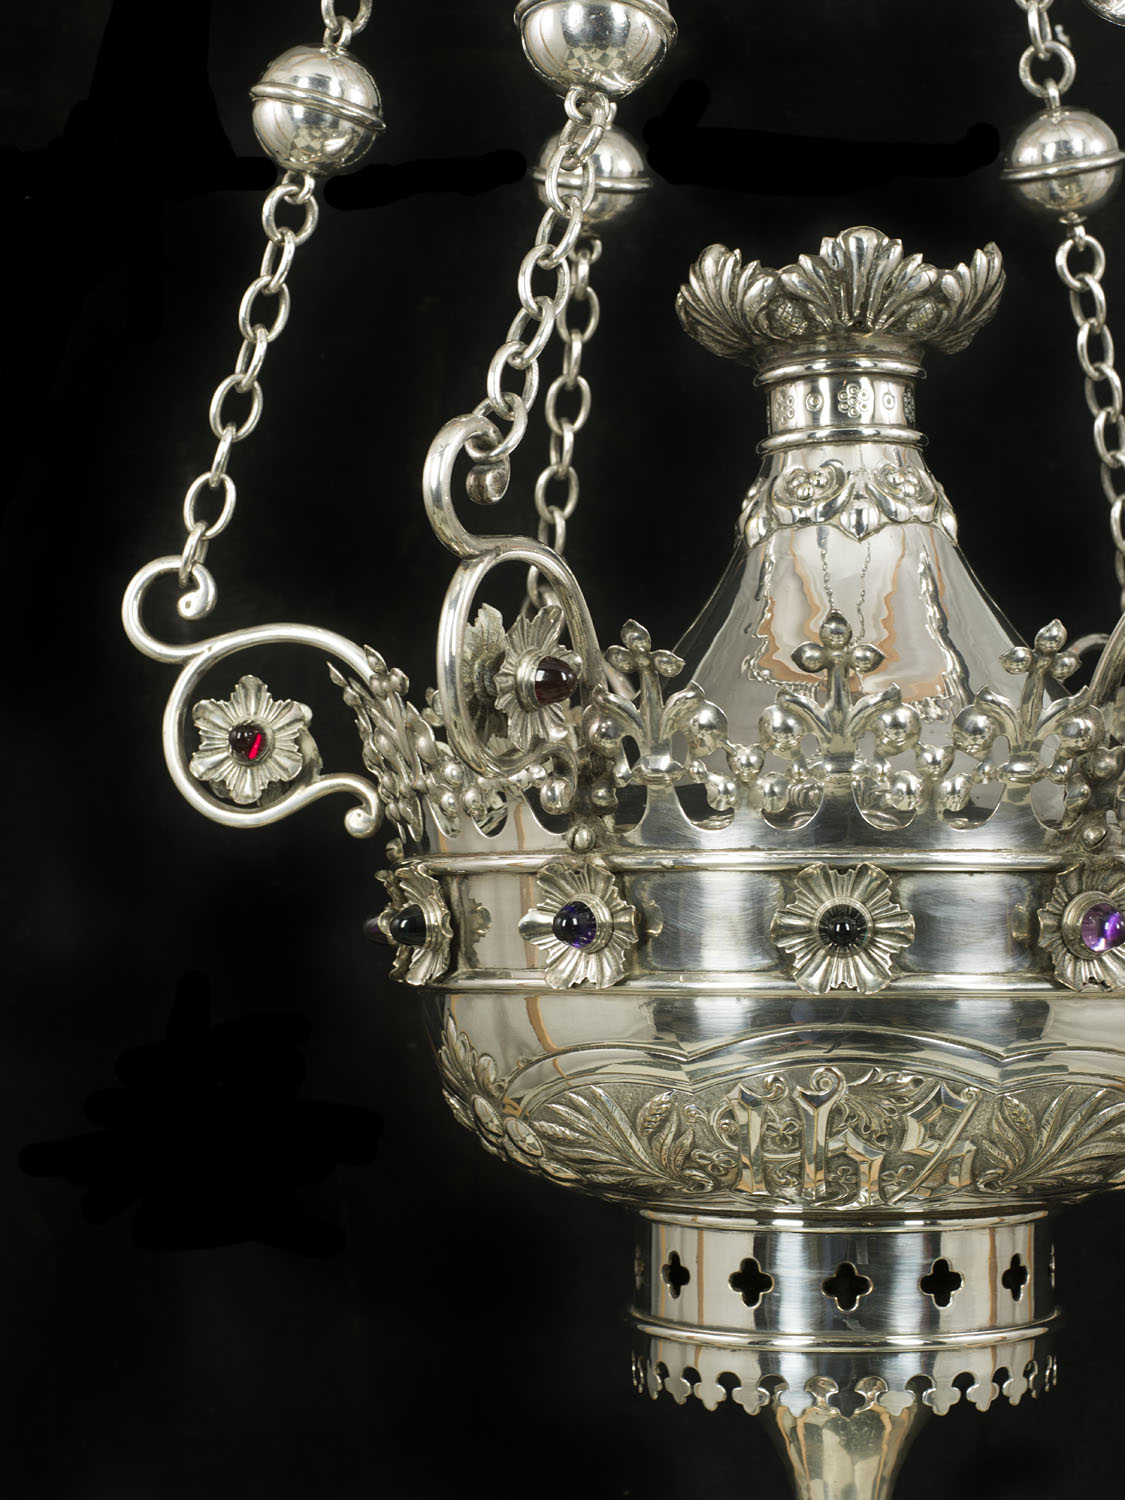 A large & rare Gothic Revival silver plated antique incense burner